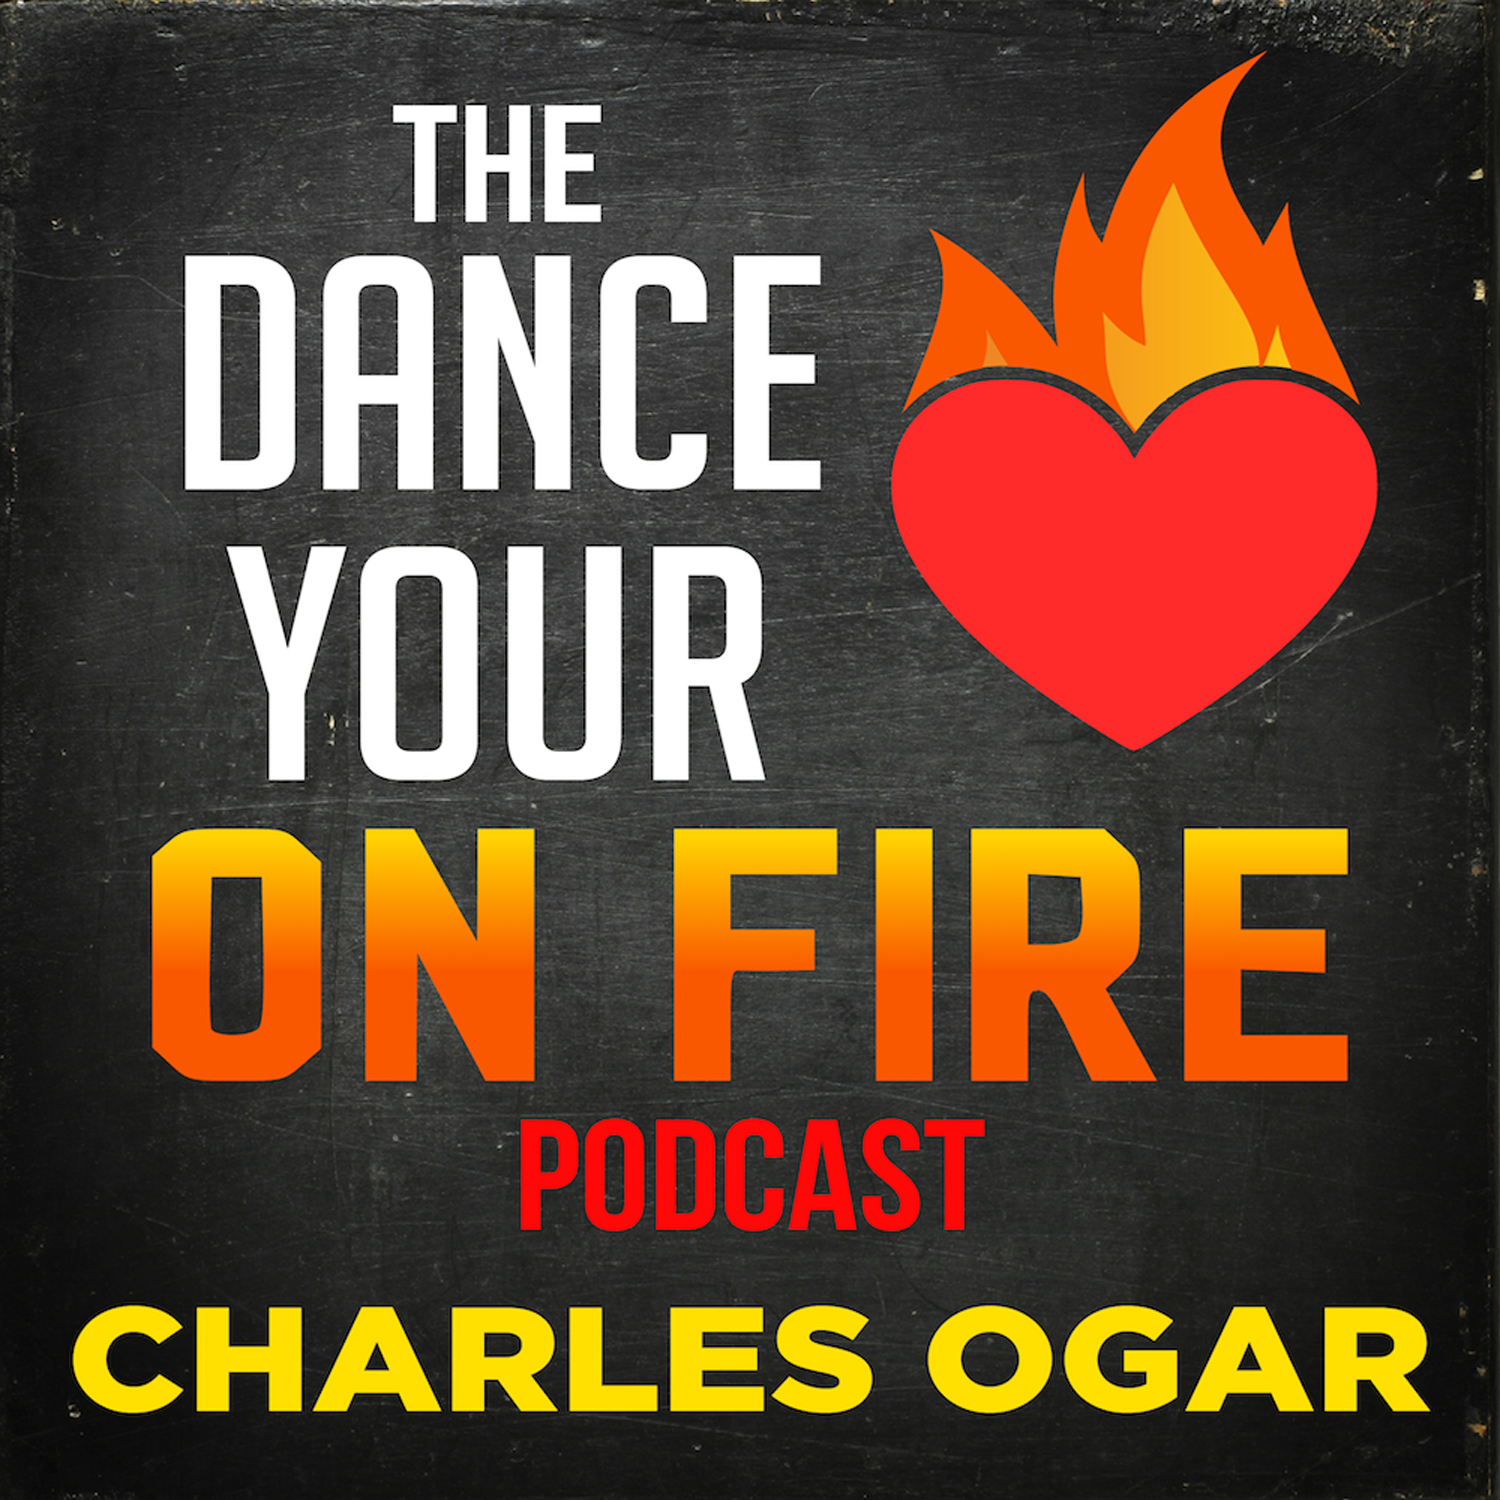 The Dance Your Heart On Fire Podcast